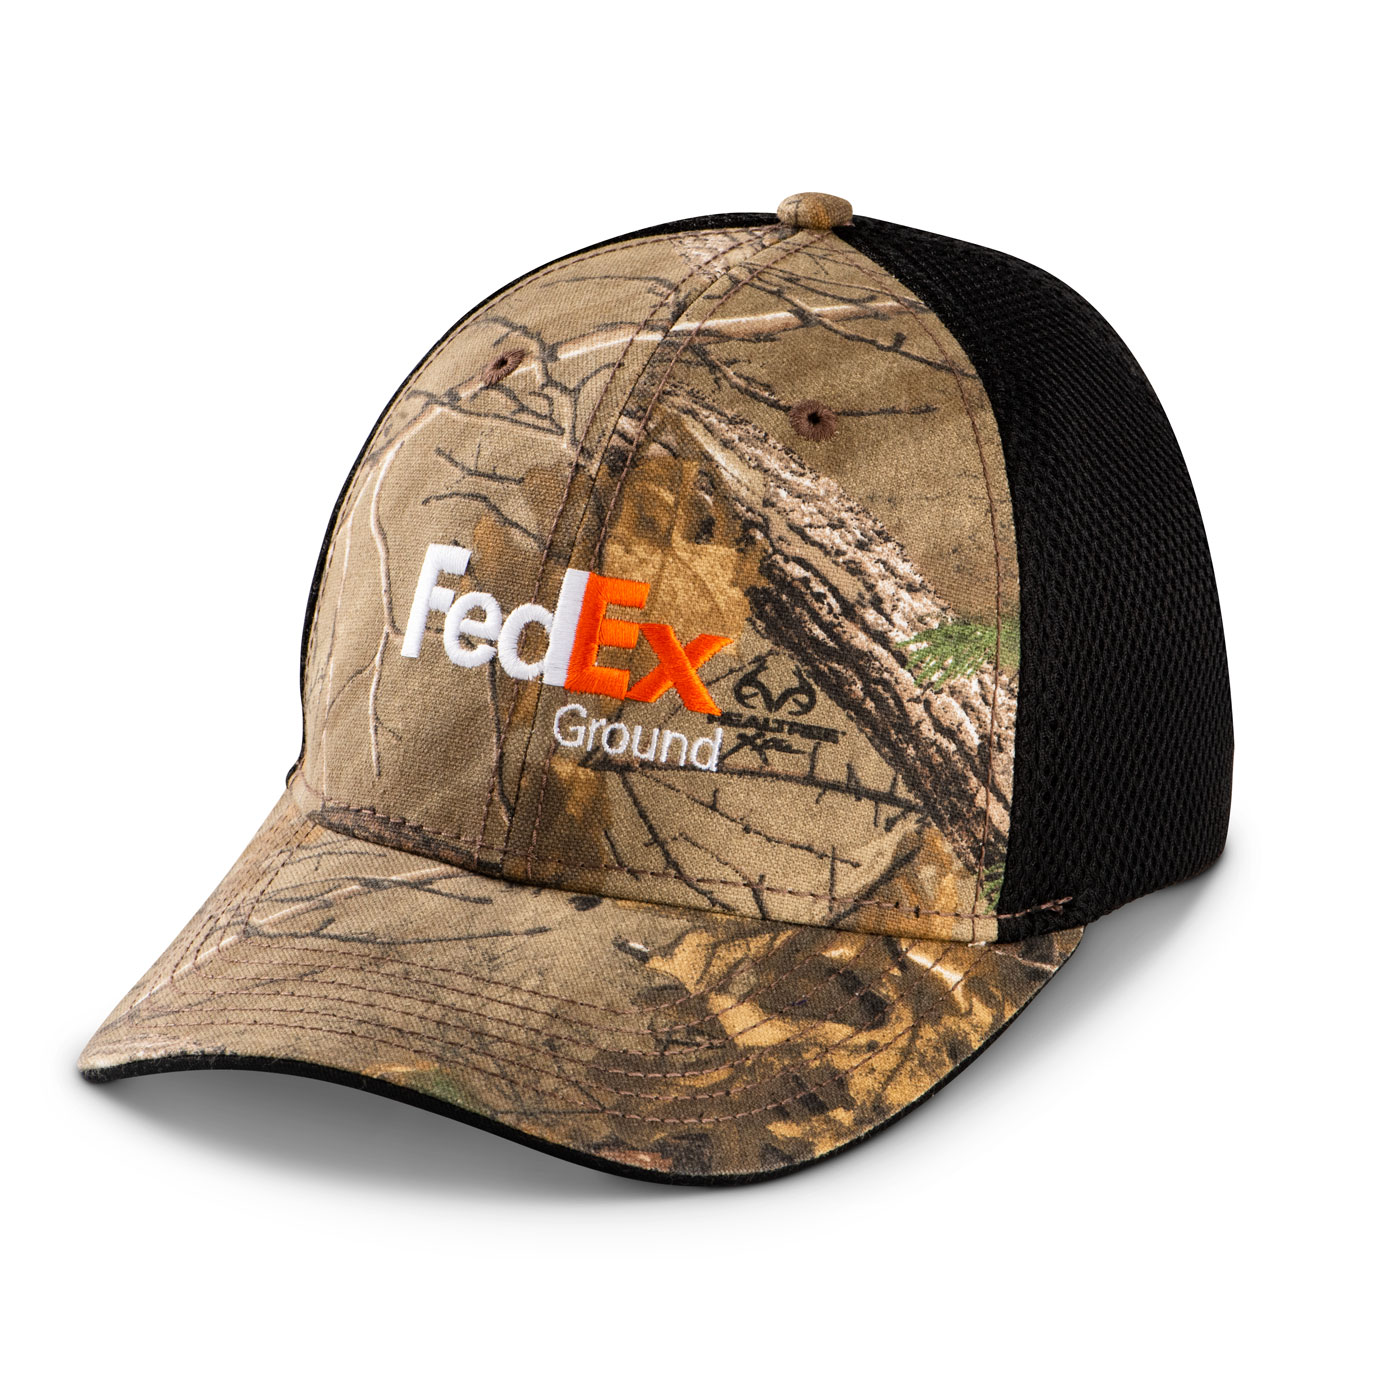 FedEx Freight Black Embroidered Logo Adjustable Realtree Xtra Camo Mesh Cap Hat